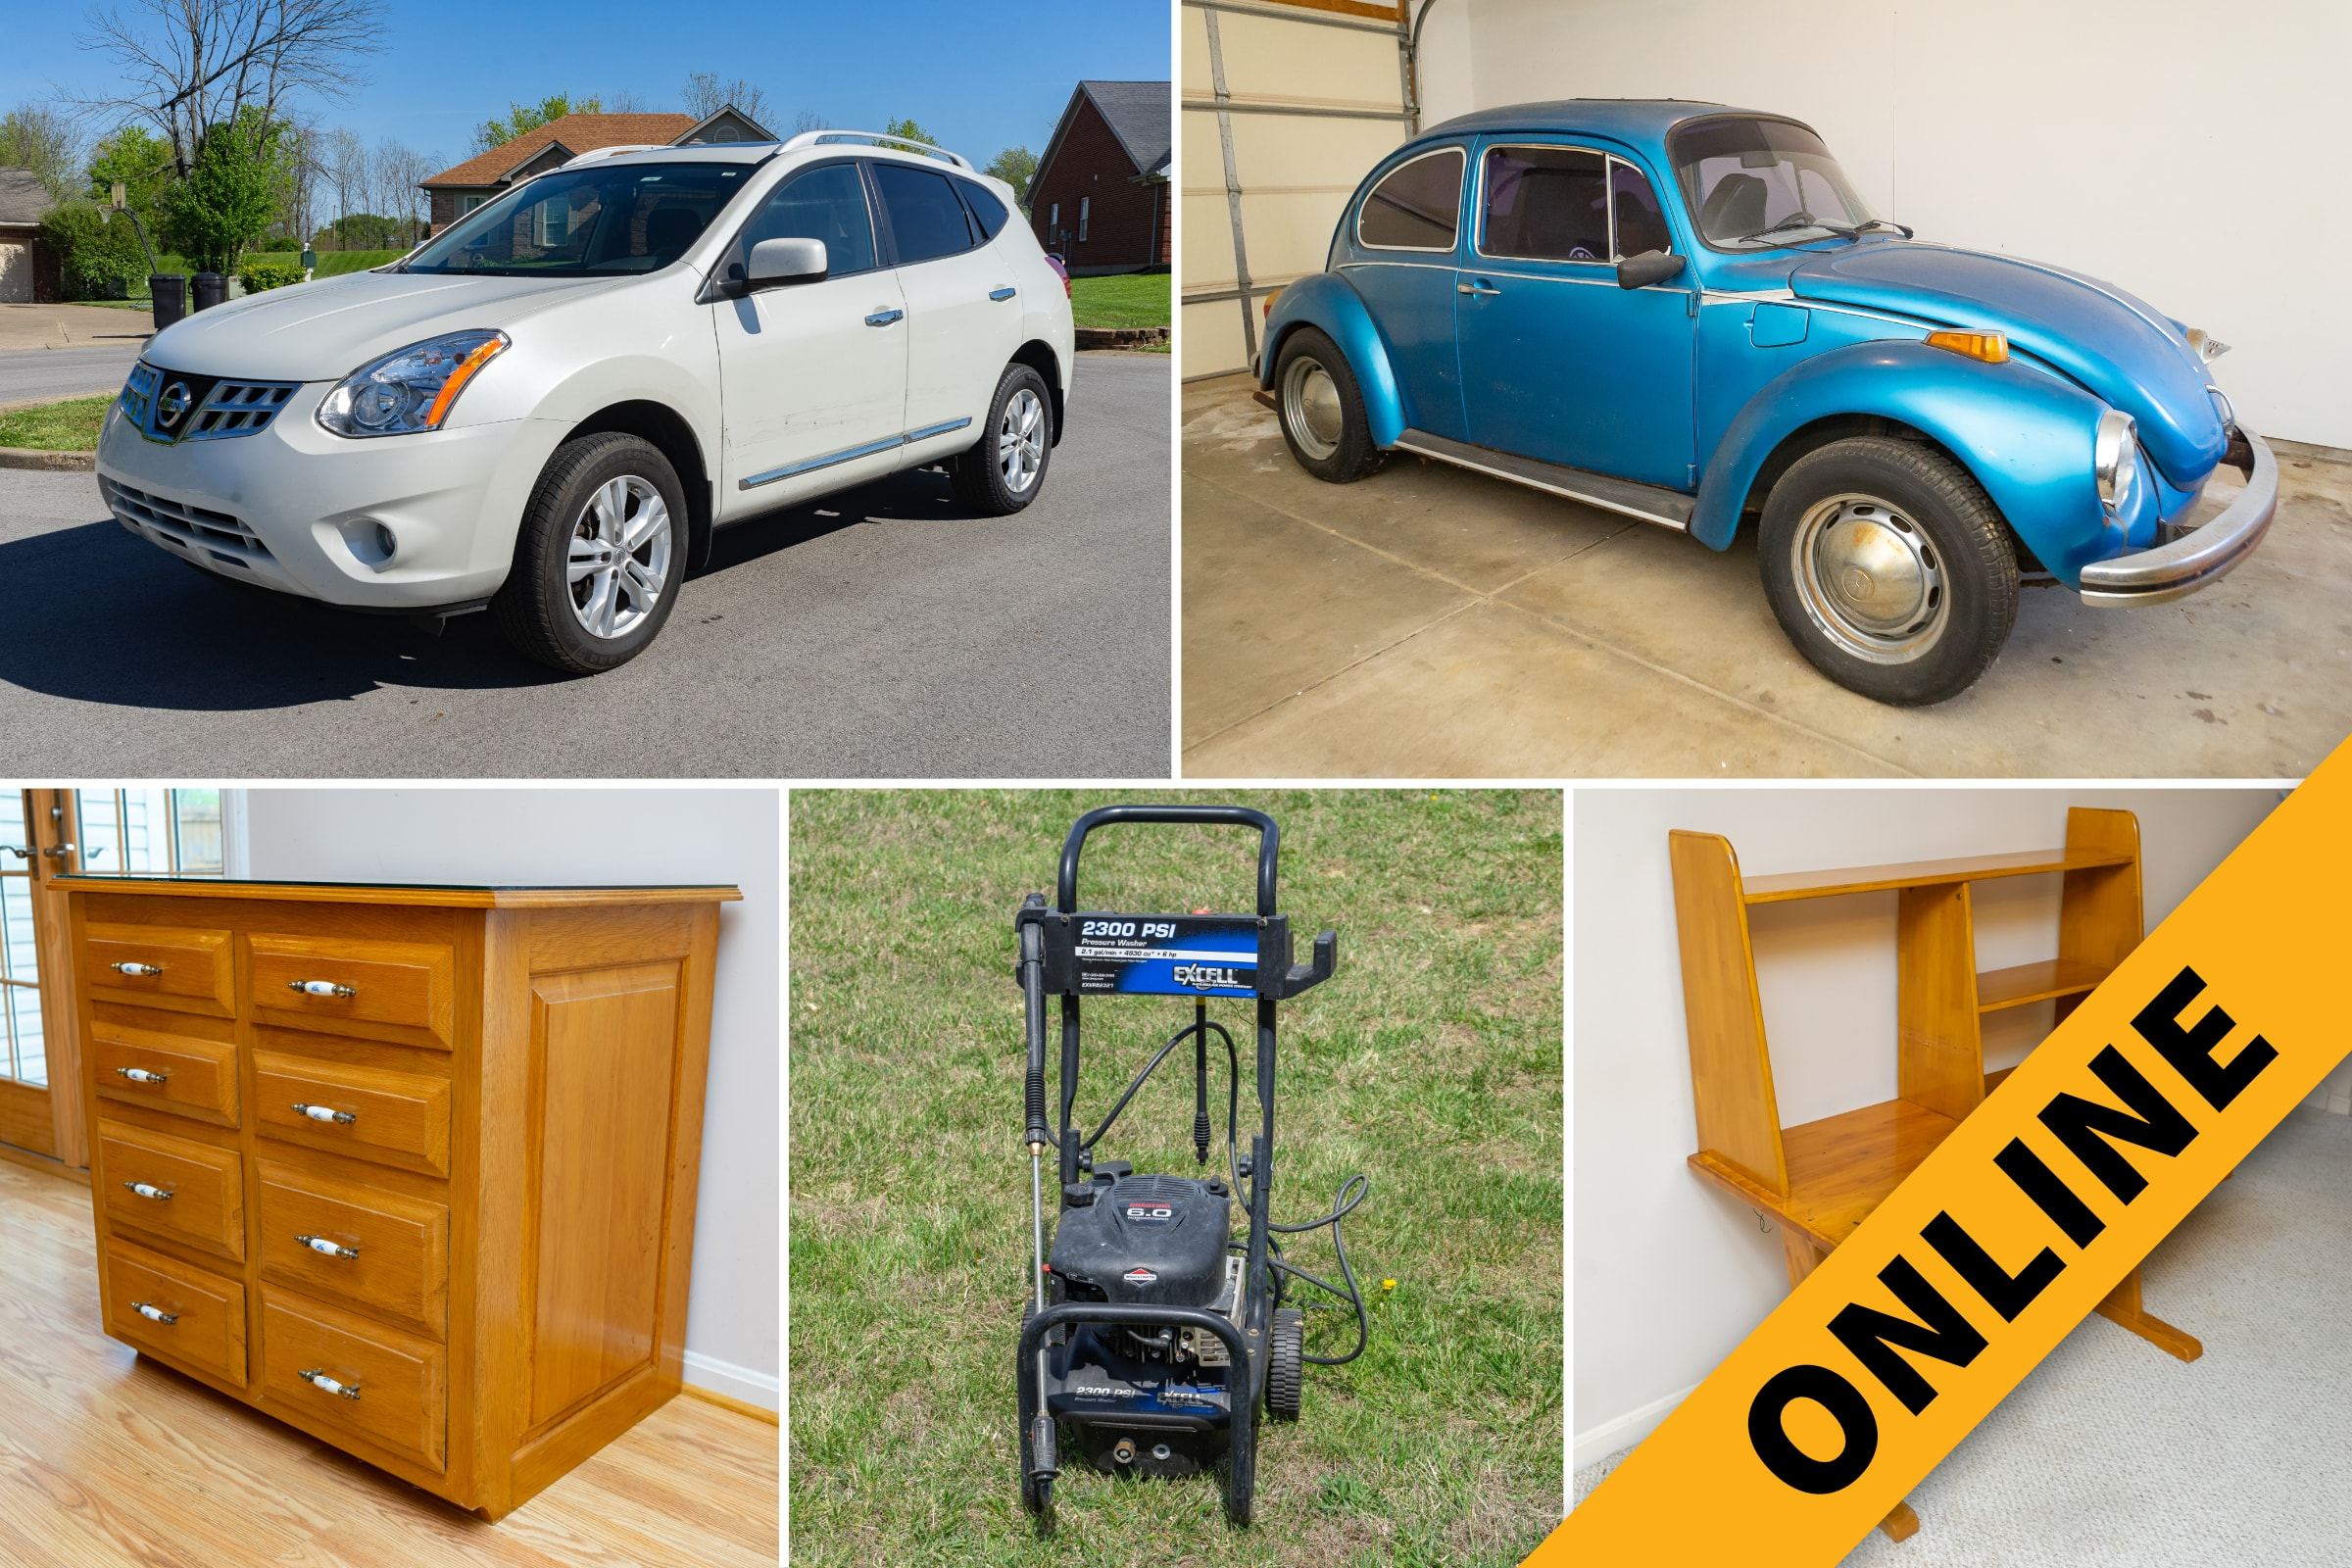 Martin Estate Vehicles & Contents Online Auction